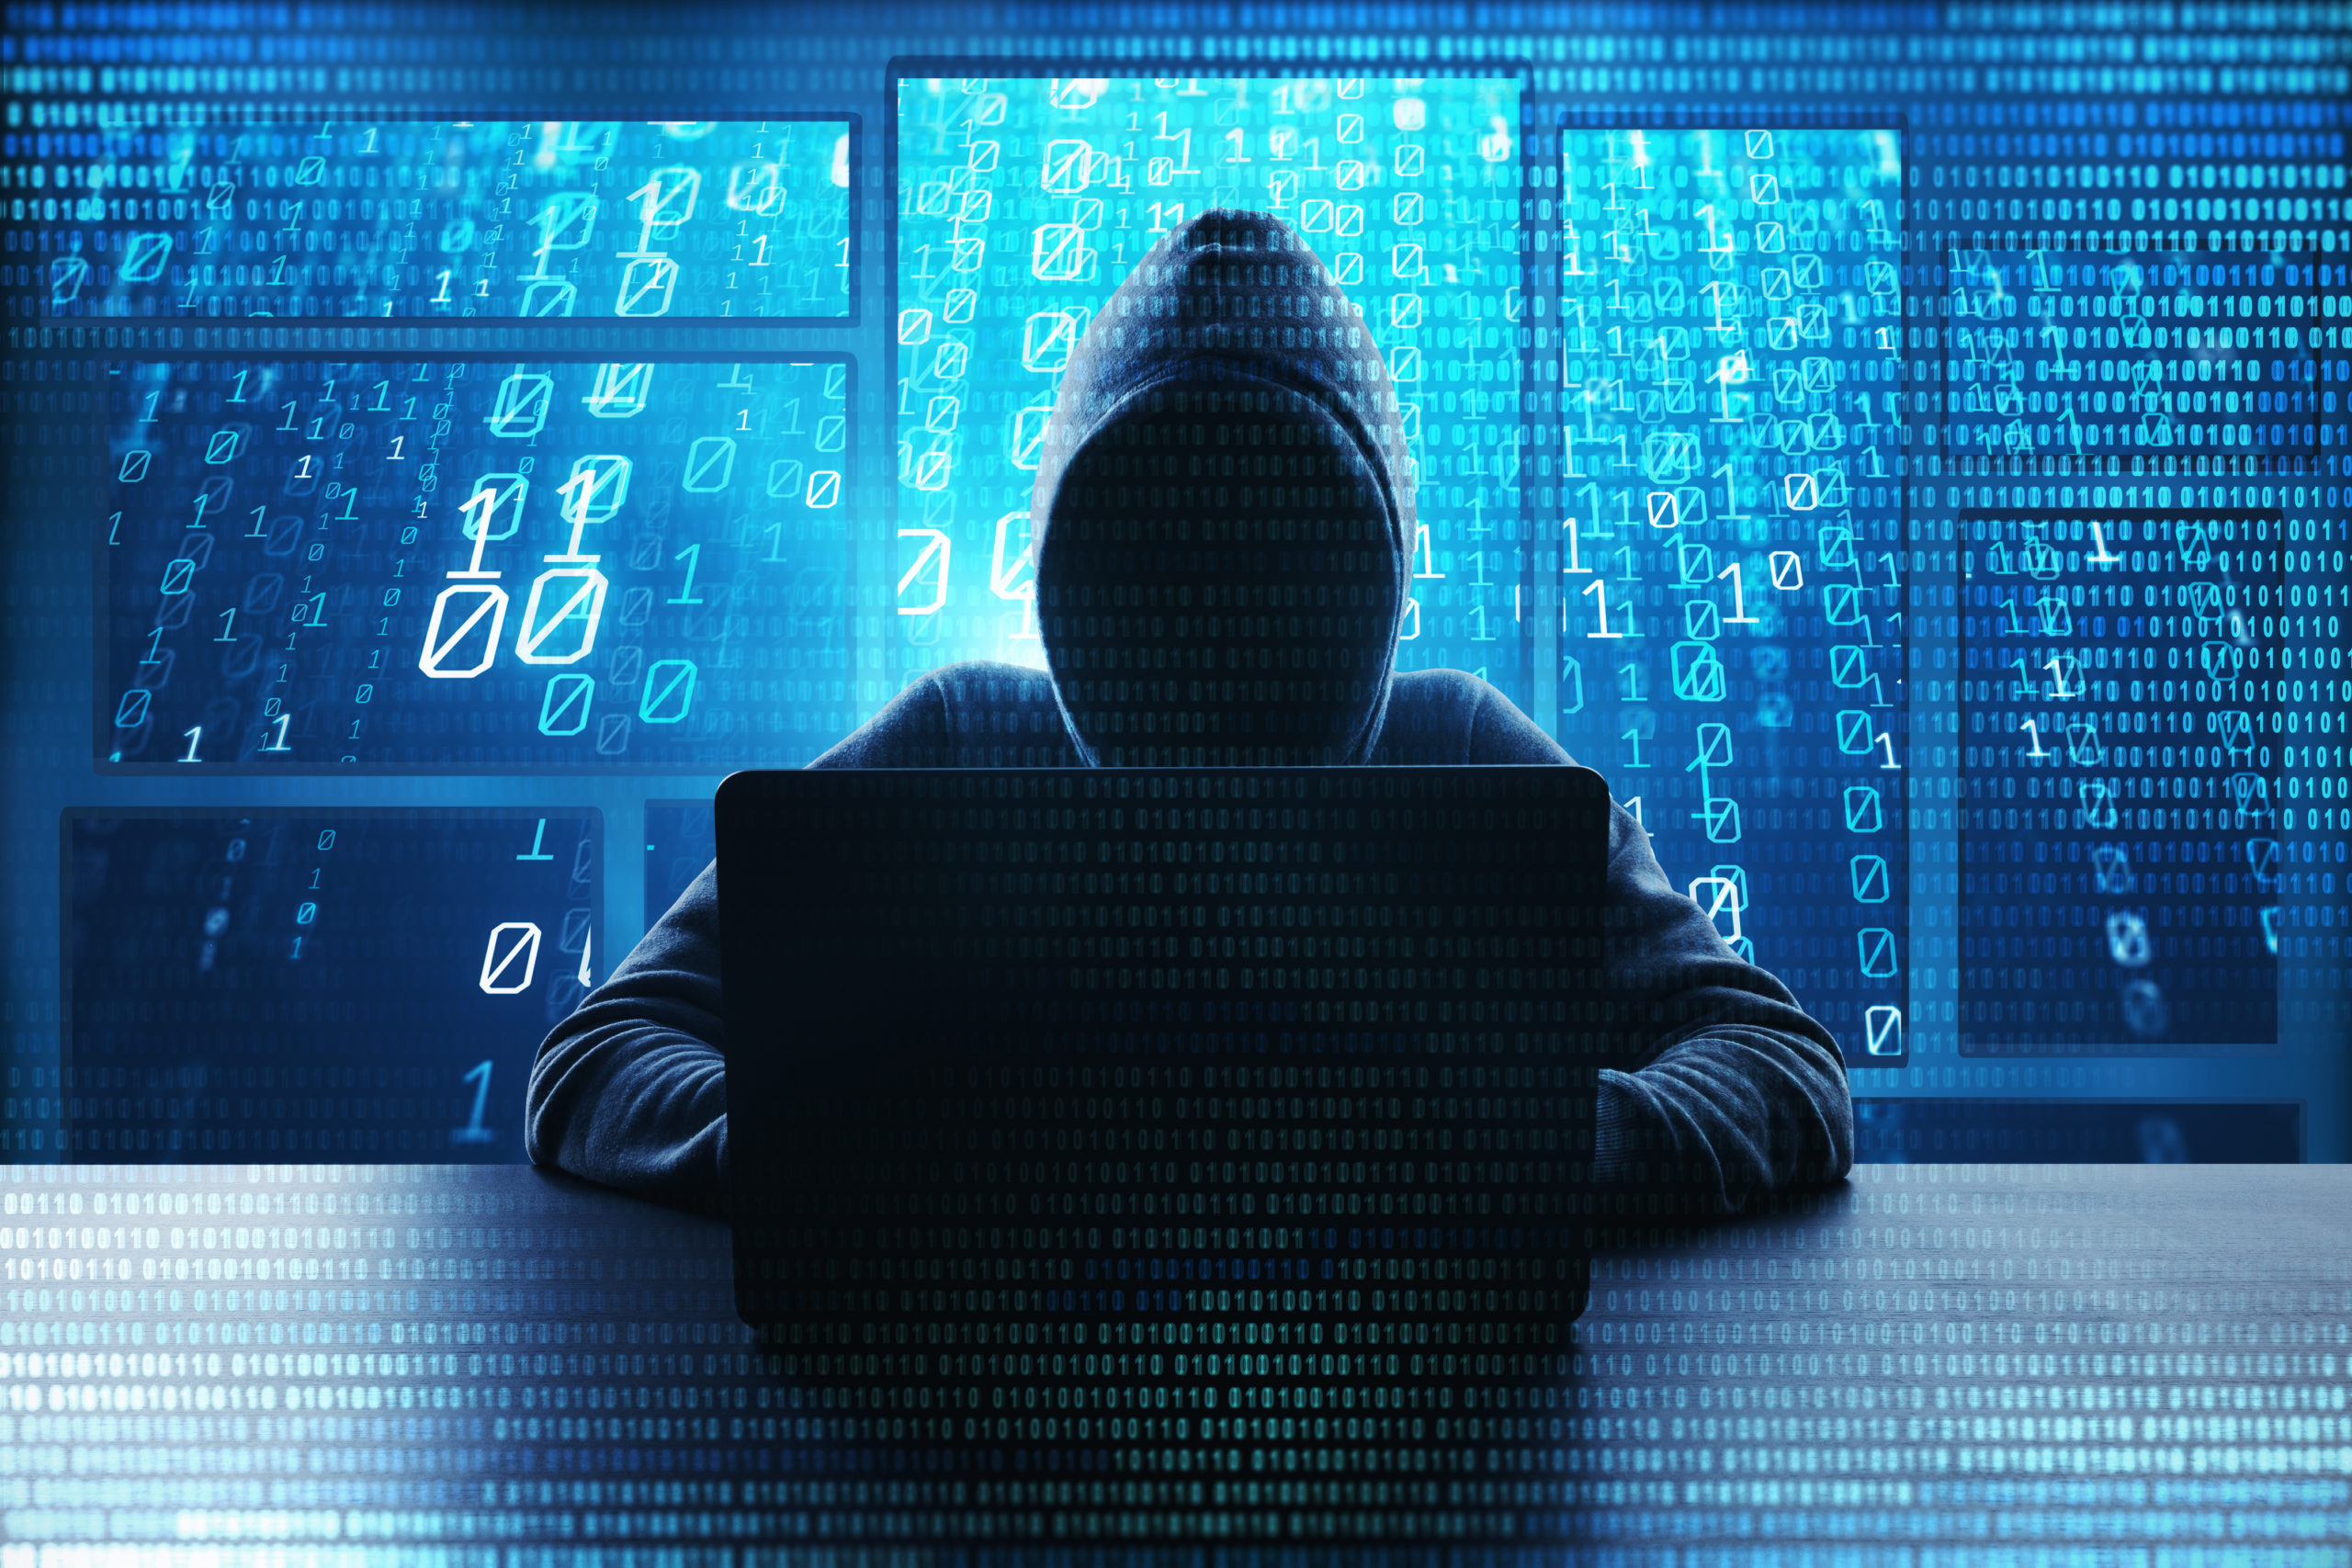 Hacking and malware concept. Hacker using abstract laptop with binary code digital interface.